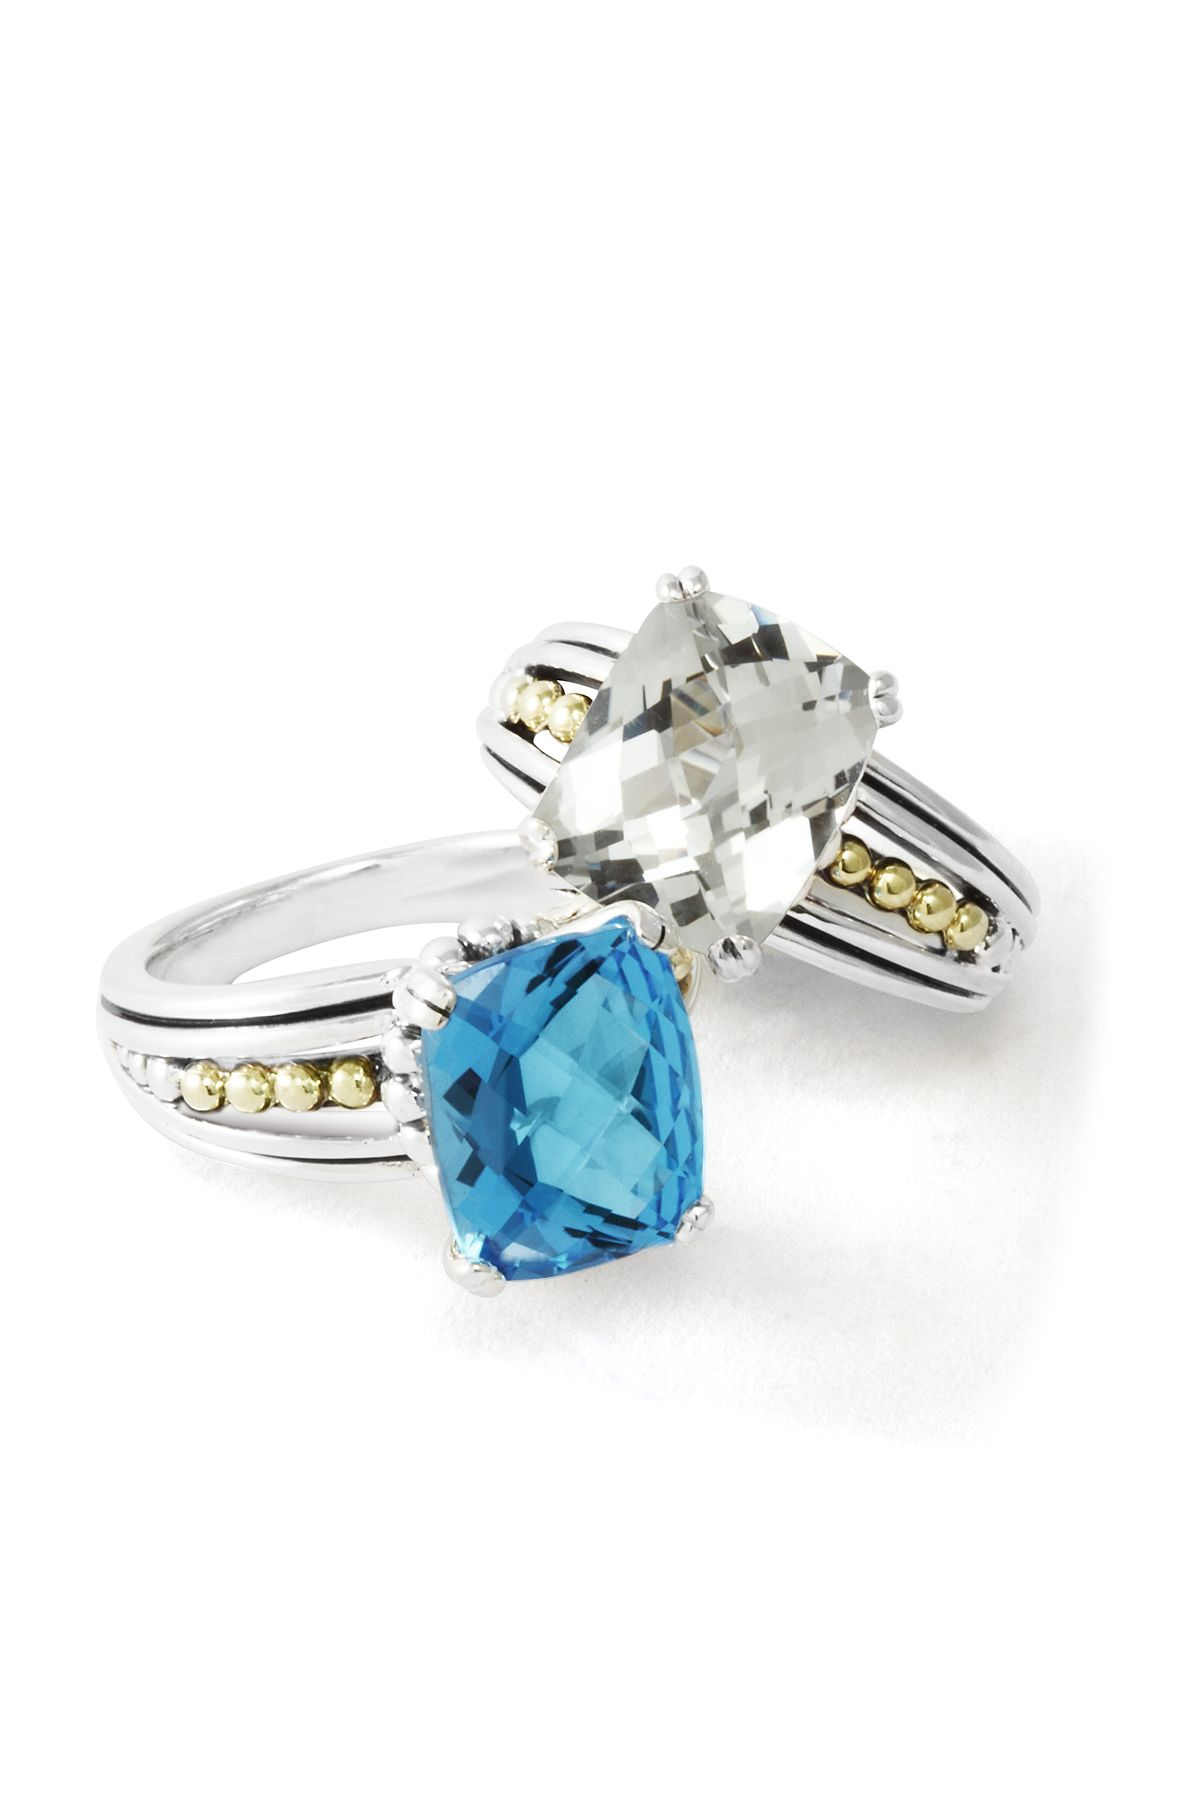 Blue and white topaz rings. LAGOS Jewelry | Prism collection.